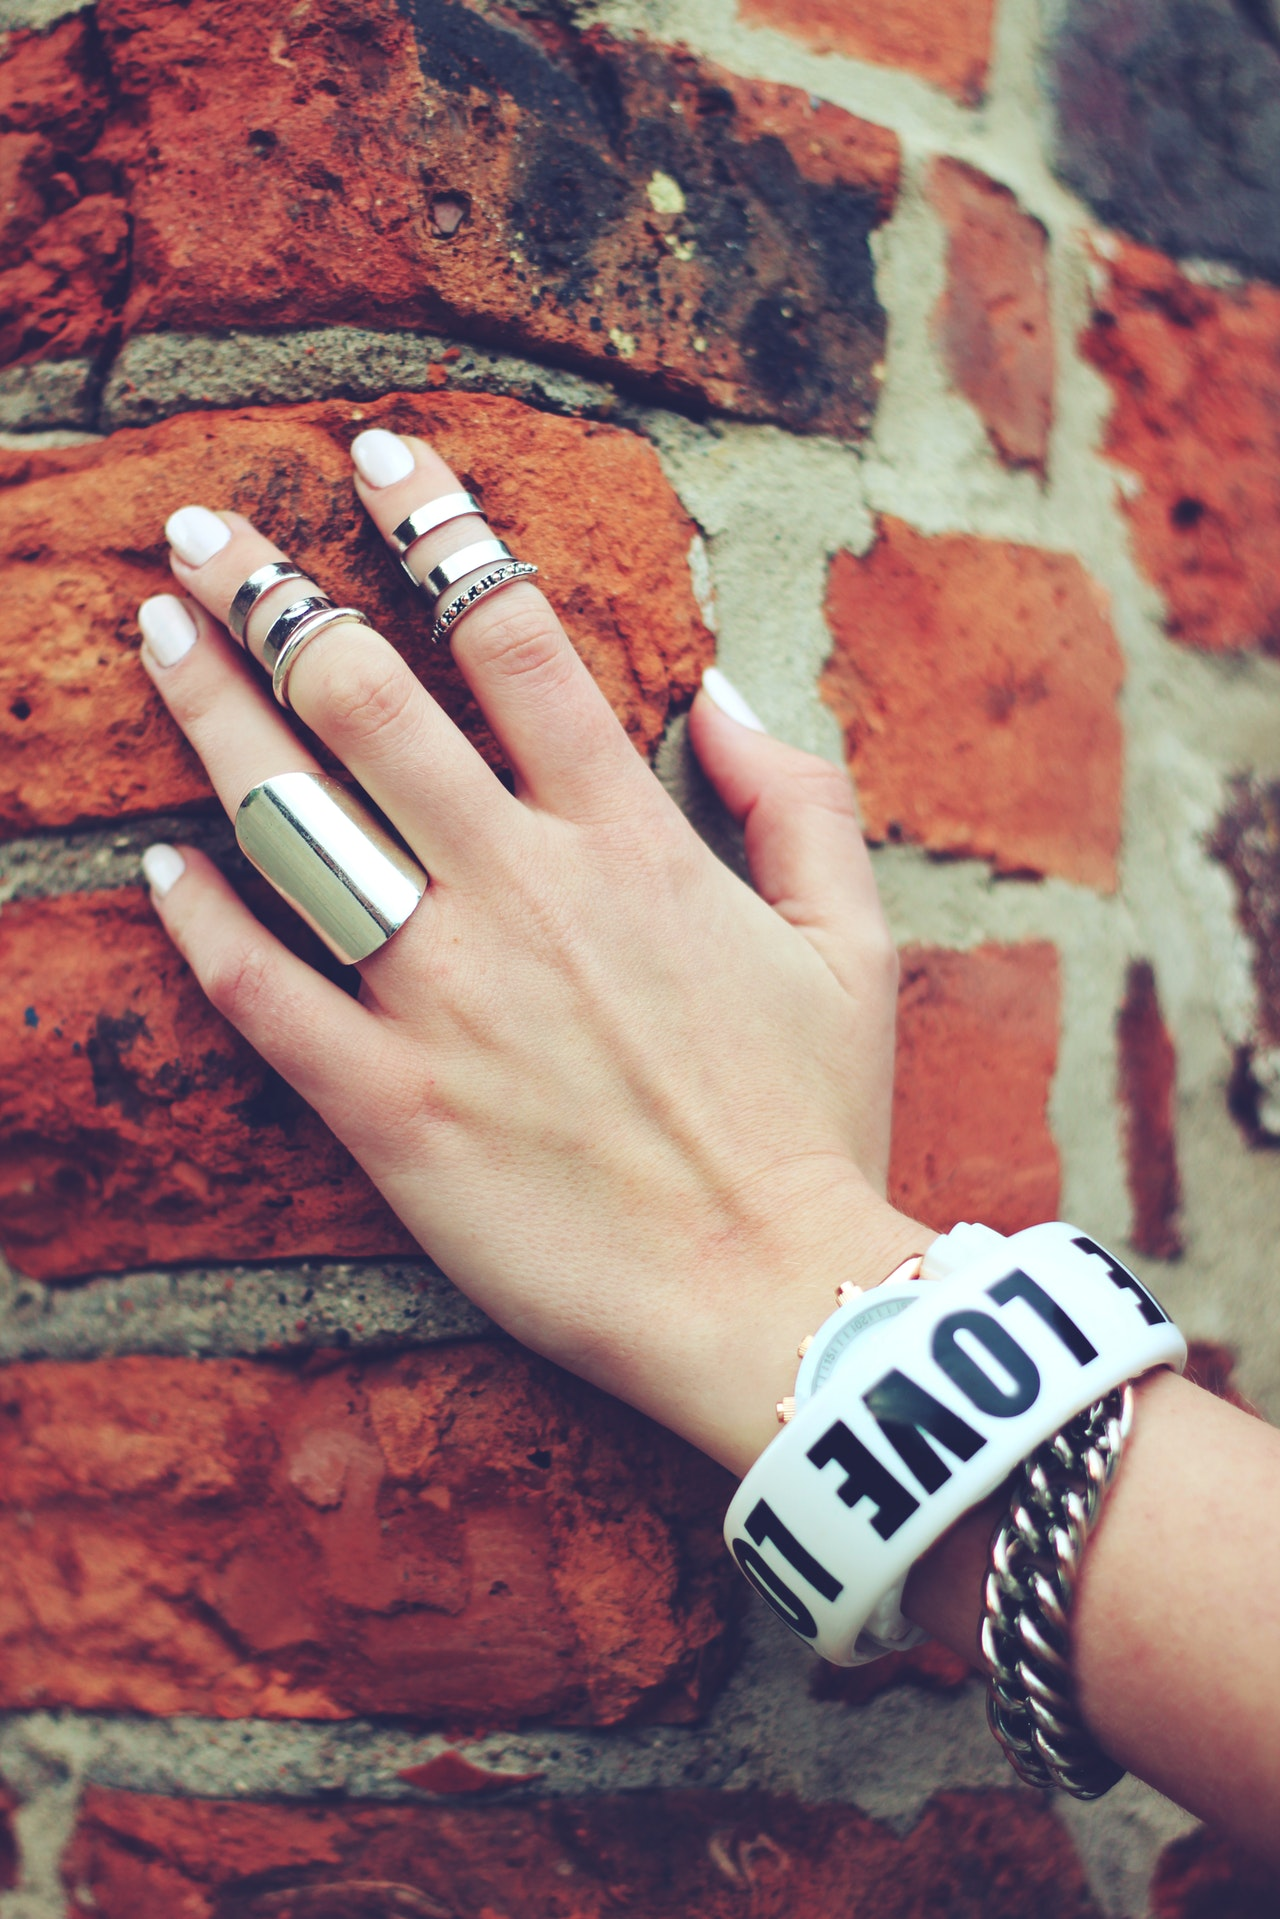 Silicone Awareness Bracelets Are More Than Just A Fashion Statement